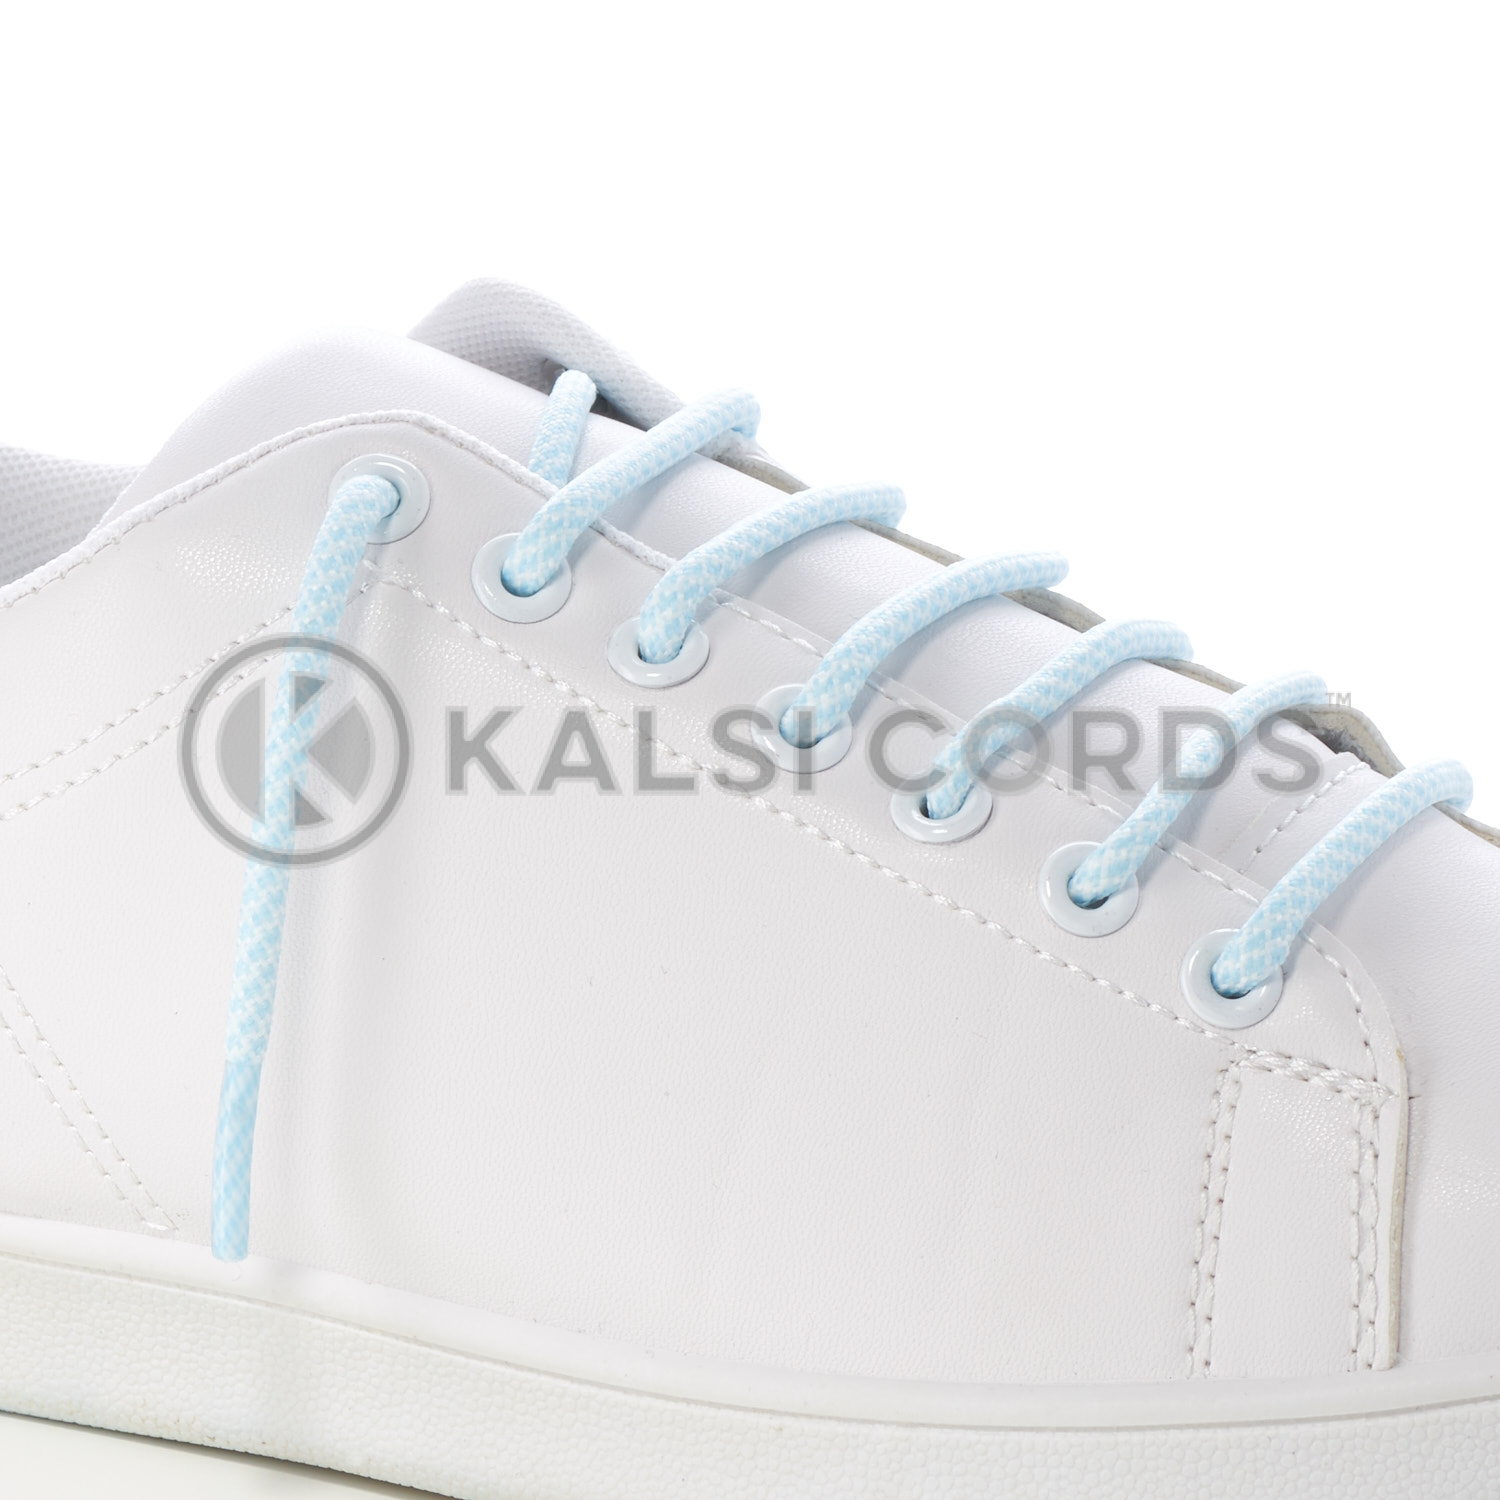 T655 5mm Round Cord Honeycomb Shoe Lace Baby Blue White Kids Trainers Adults Adidas Yeezy Boost Hiking Walking Boots Kalsi Cords